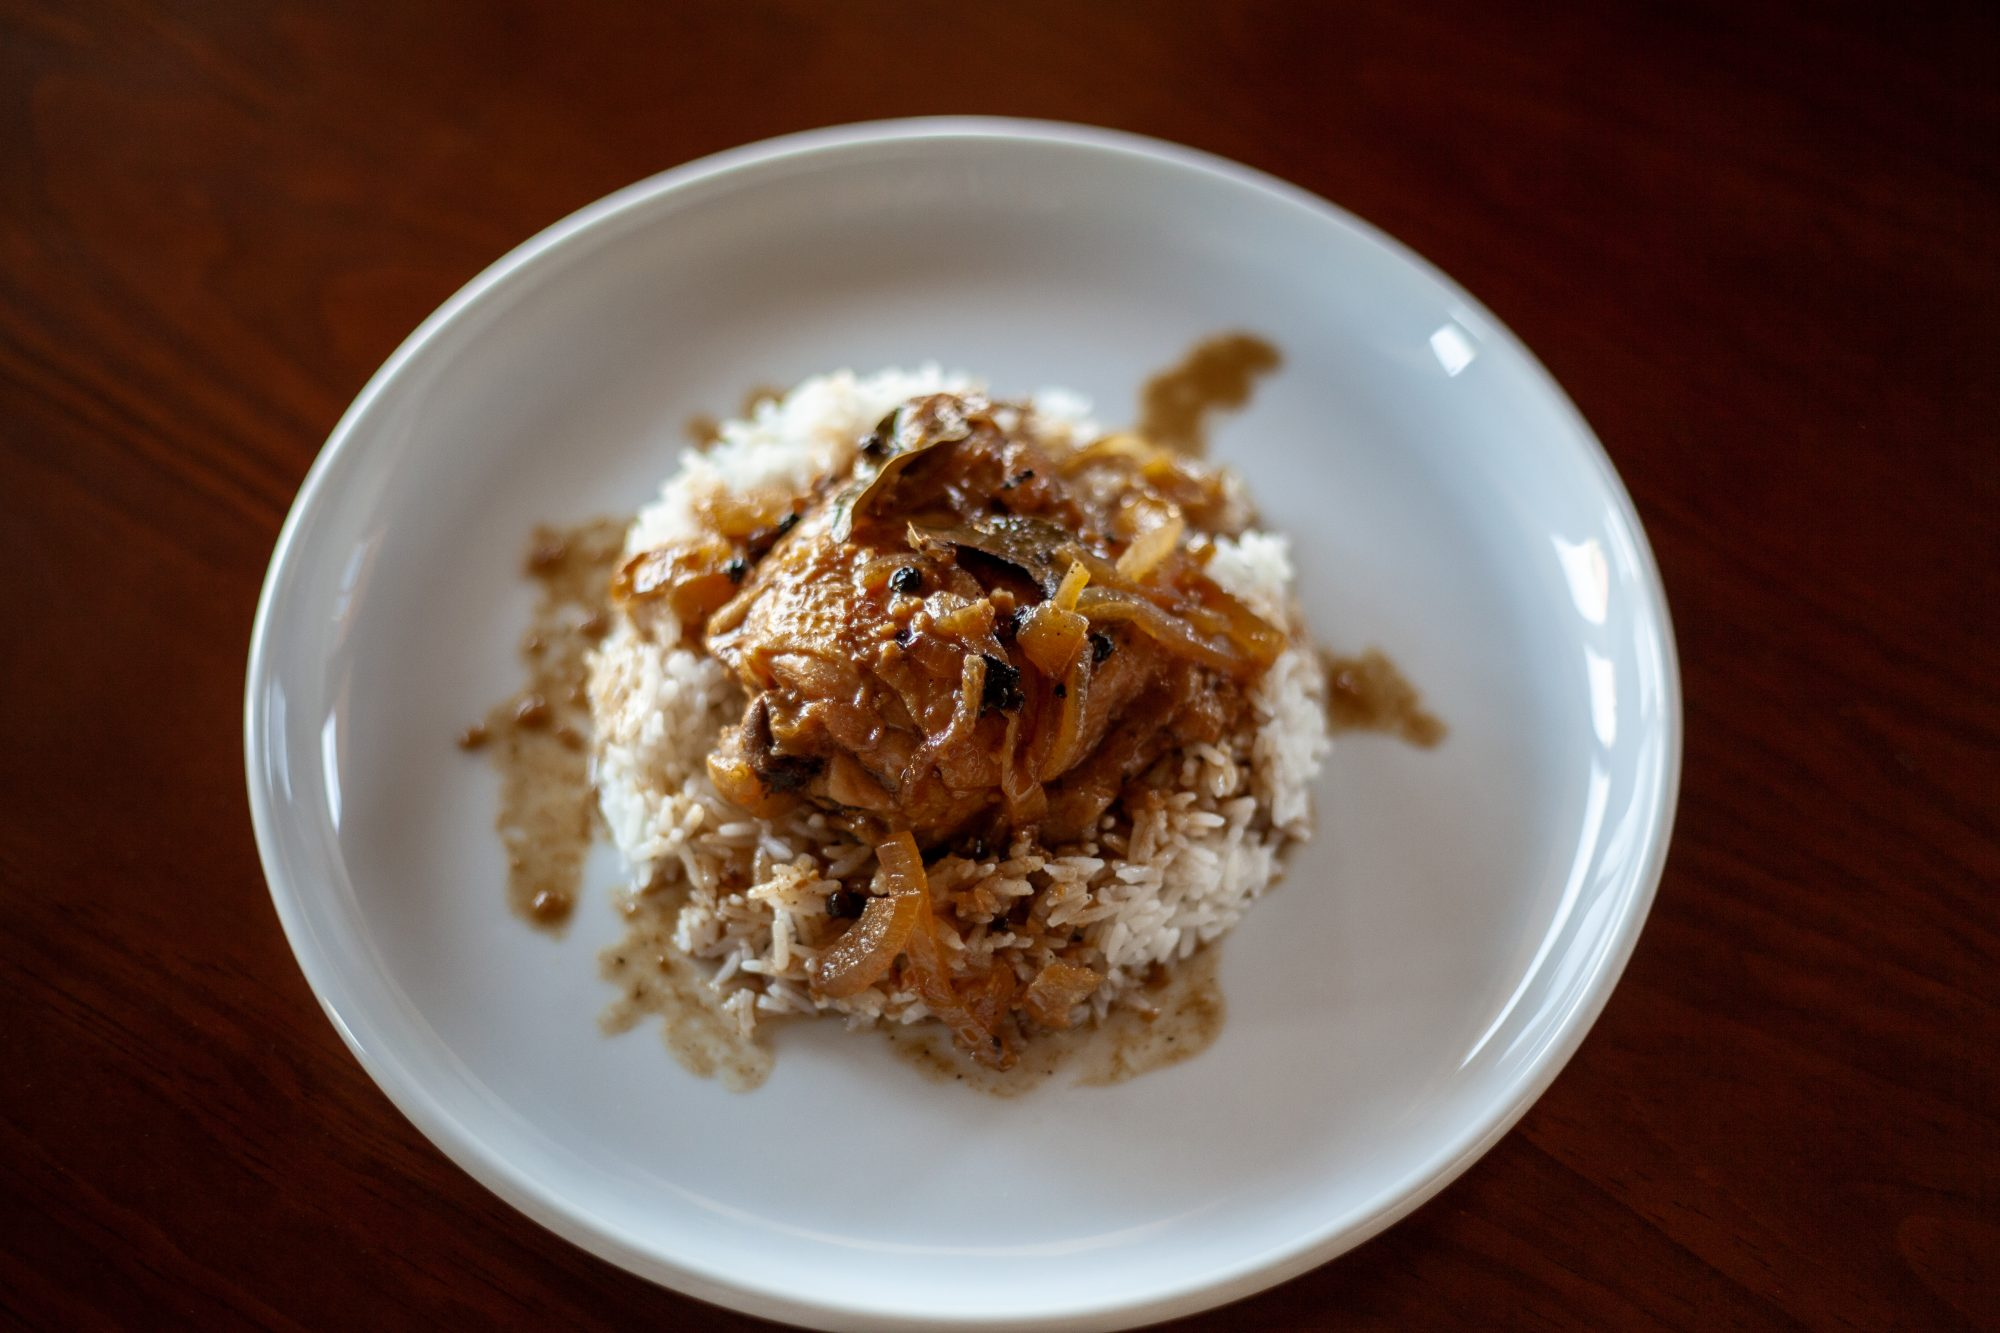 Filipino Chicken Adobo meal with rice on a plate